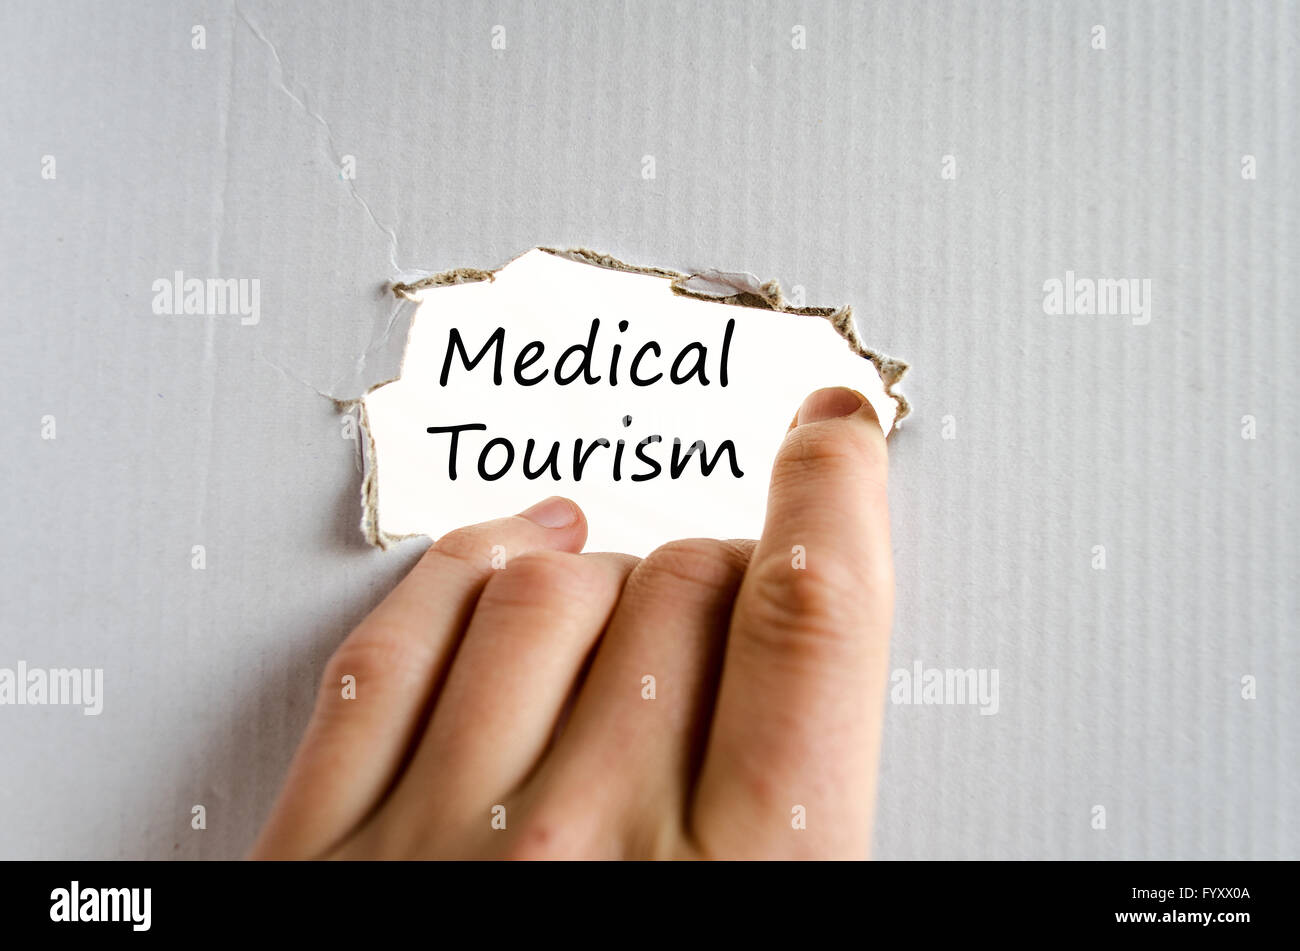 Medical tourism text concept - Stock Image